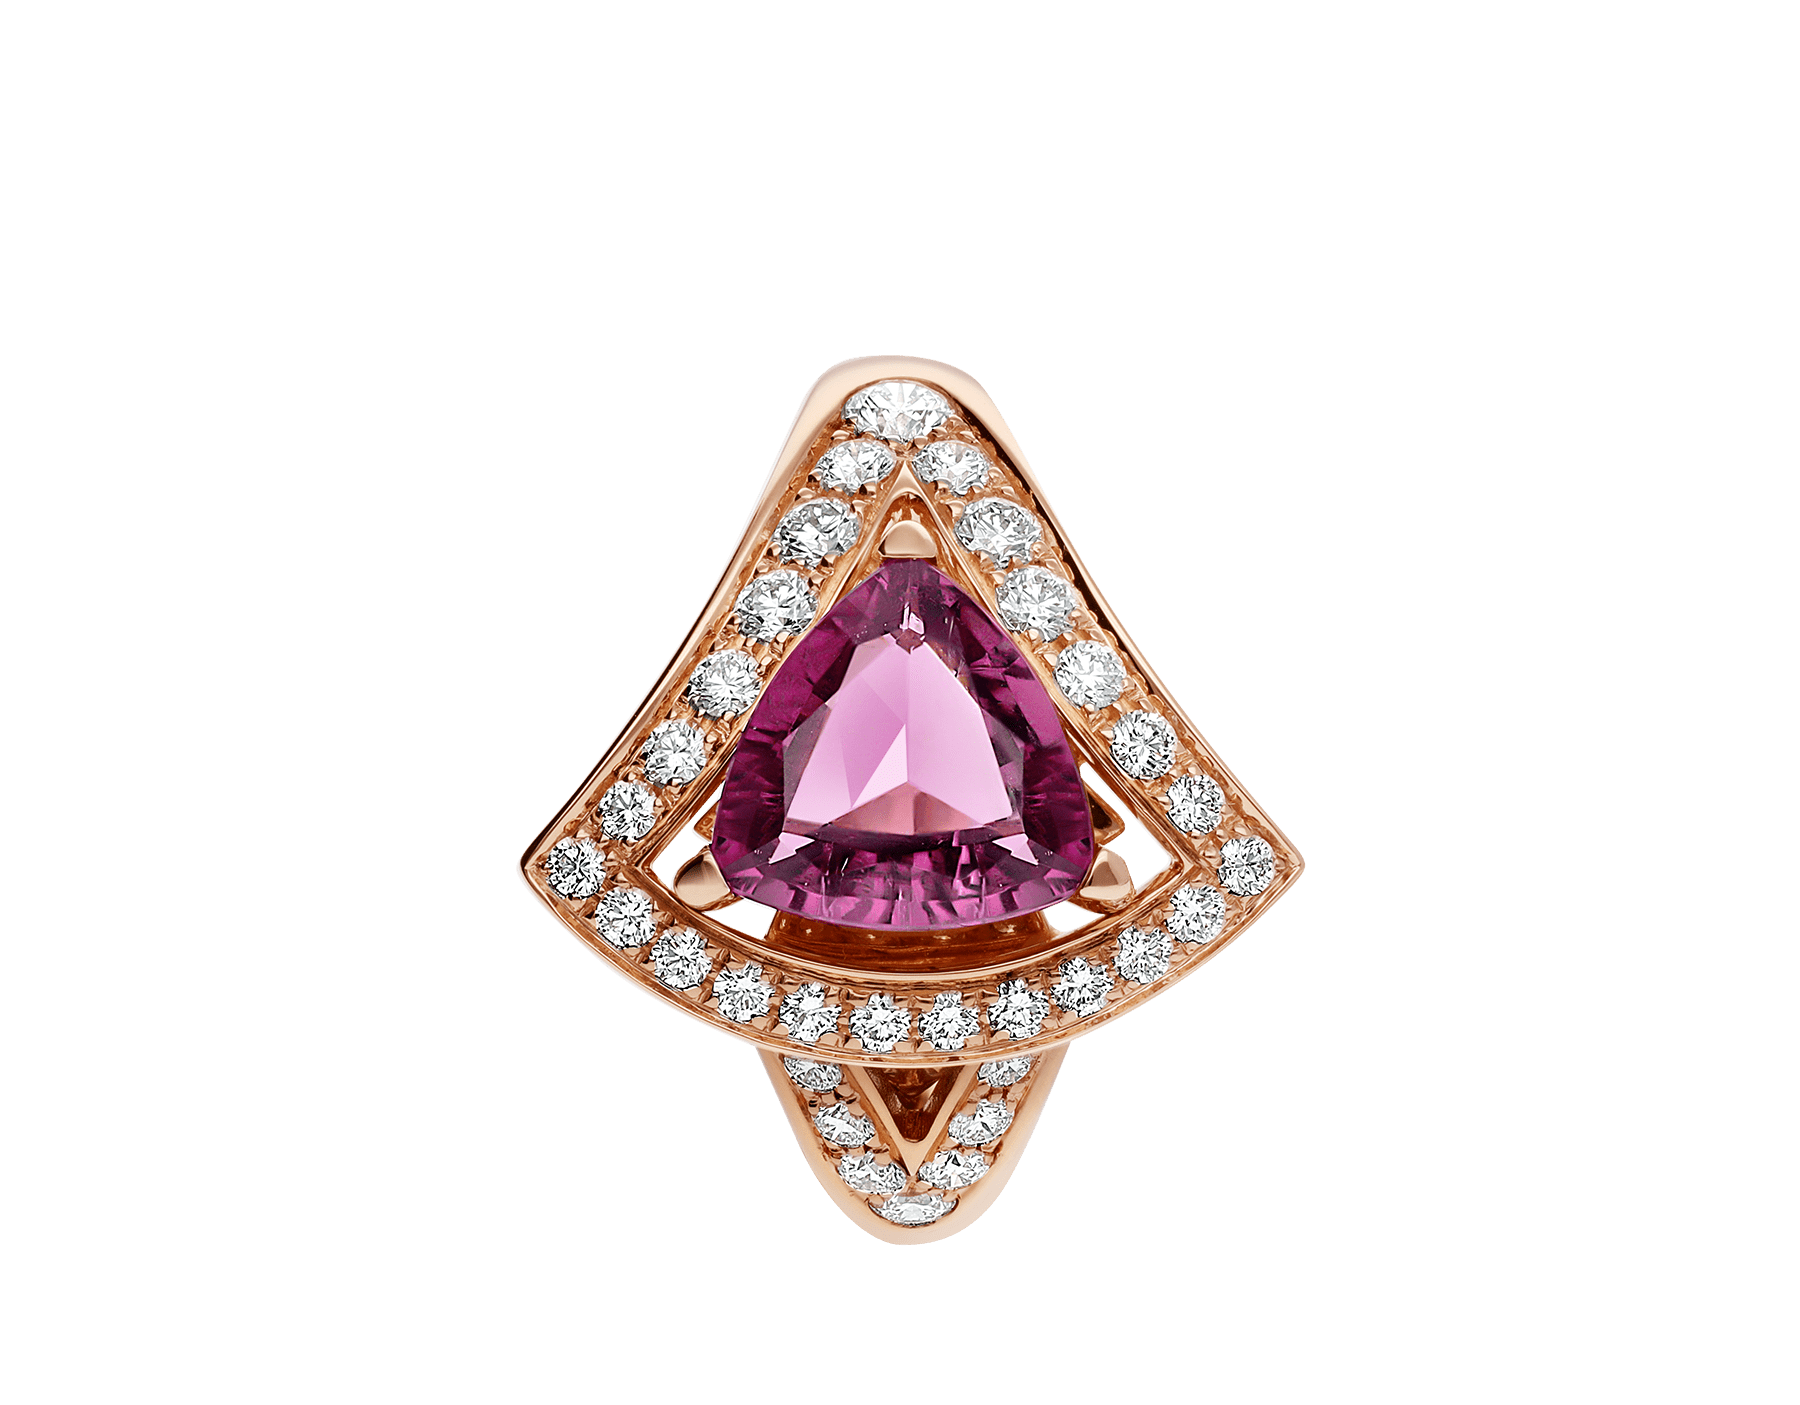 DIVAS' DREAM openwork ring in 18 kt rose gold with a pink tourmaline and set with pavé diamonds. AN858124 image 2